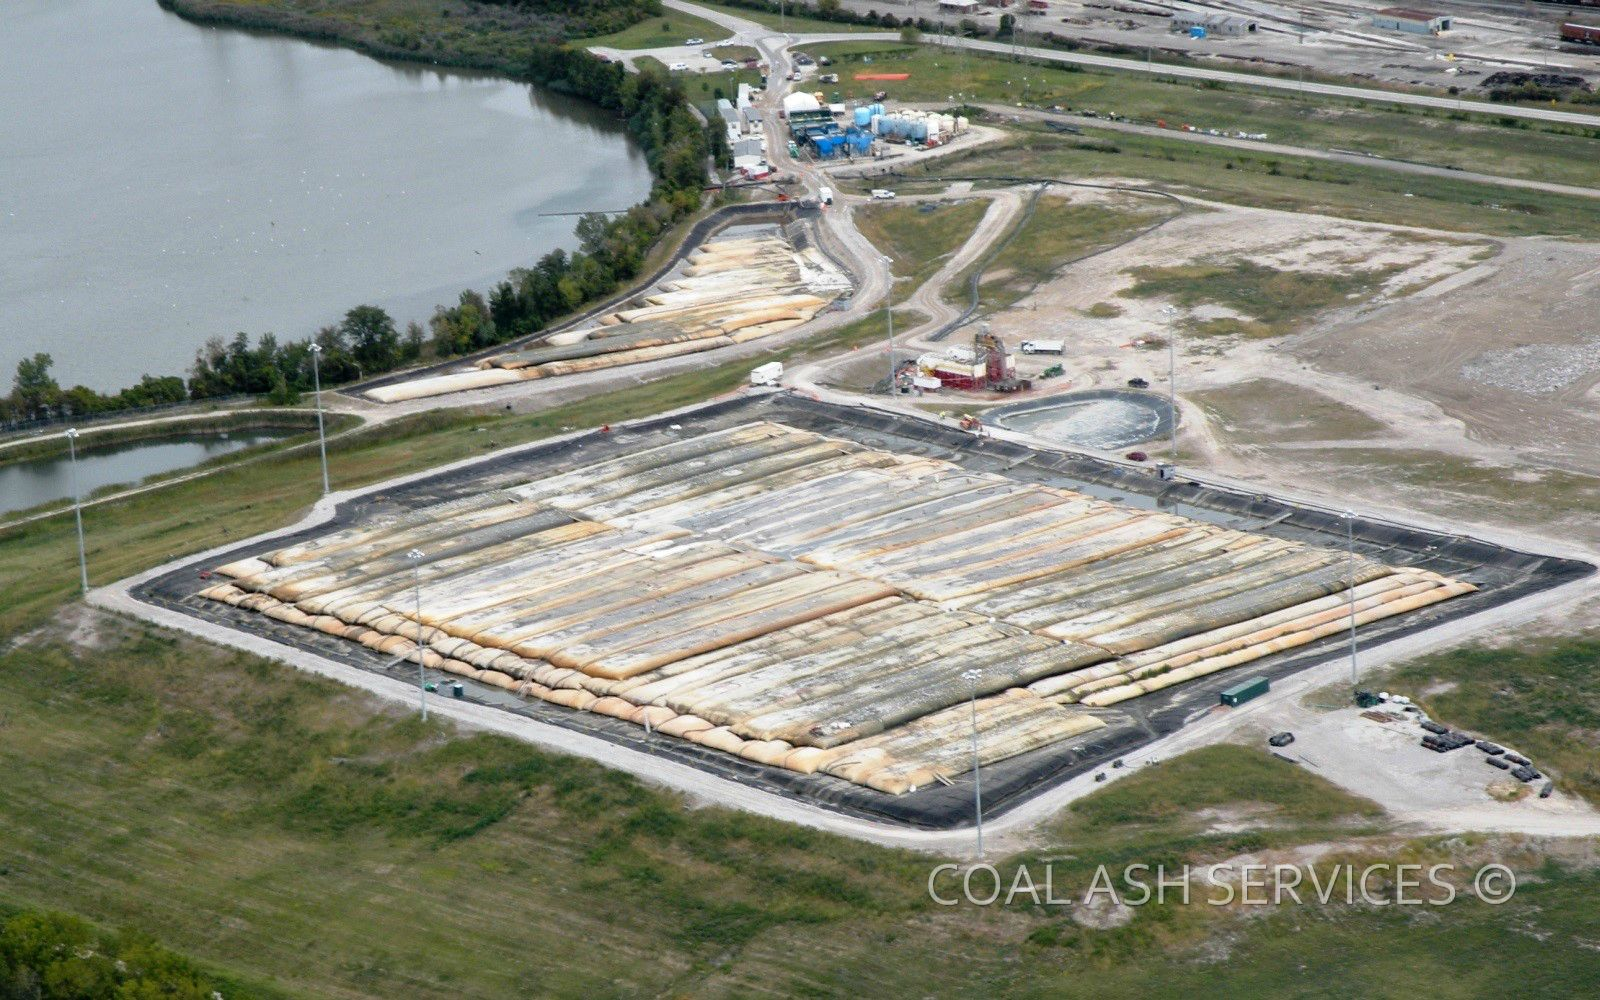 Aerial view of in-landfill dewatering and water treatment operations